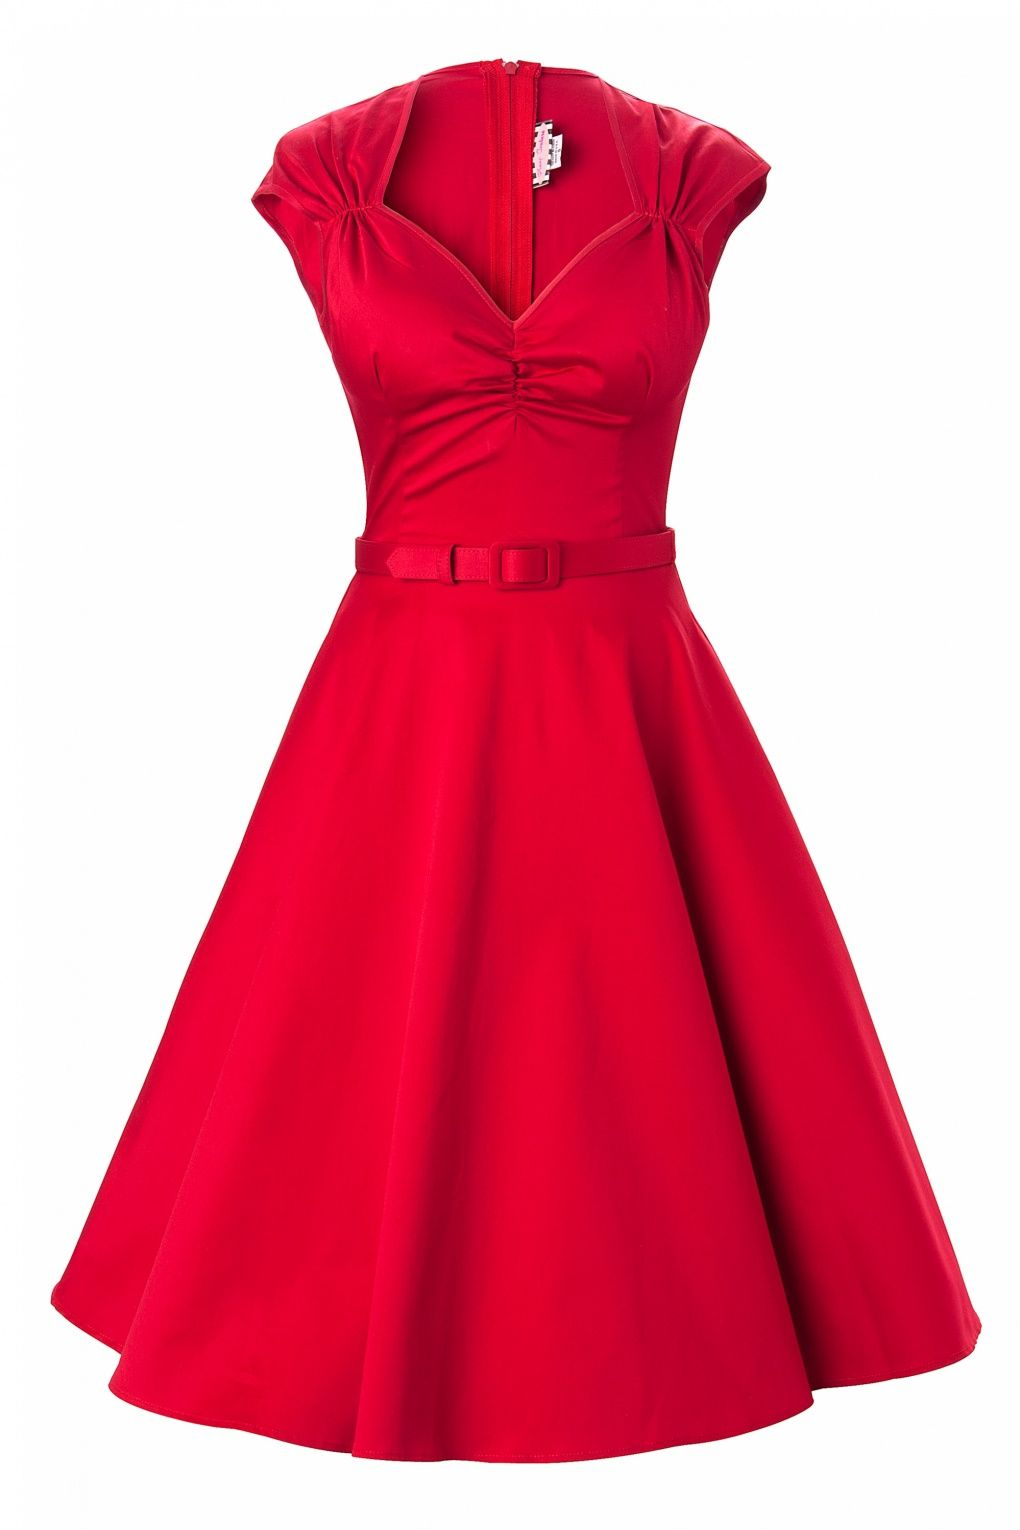 Style it vintage dresses pinterest pinup couture couture and